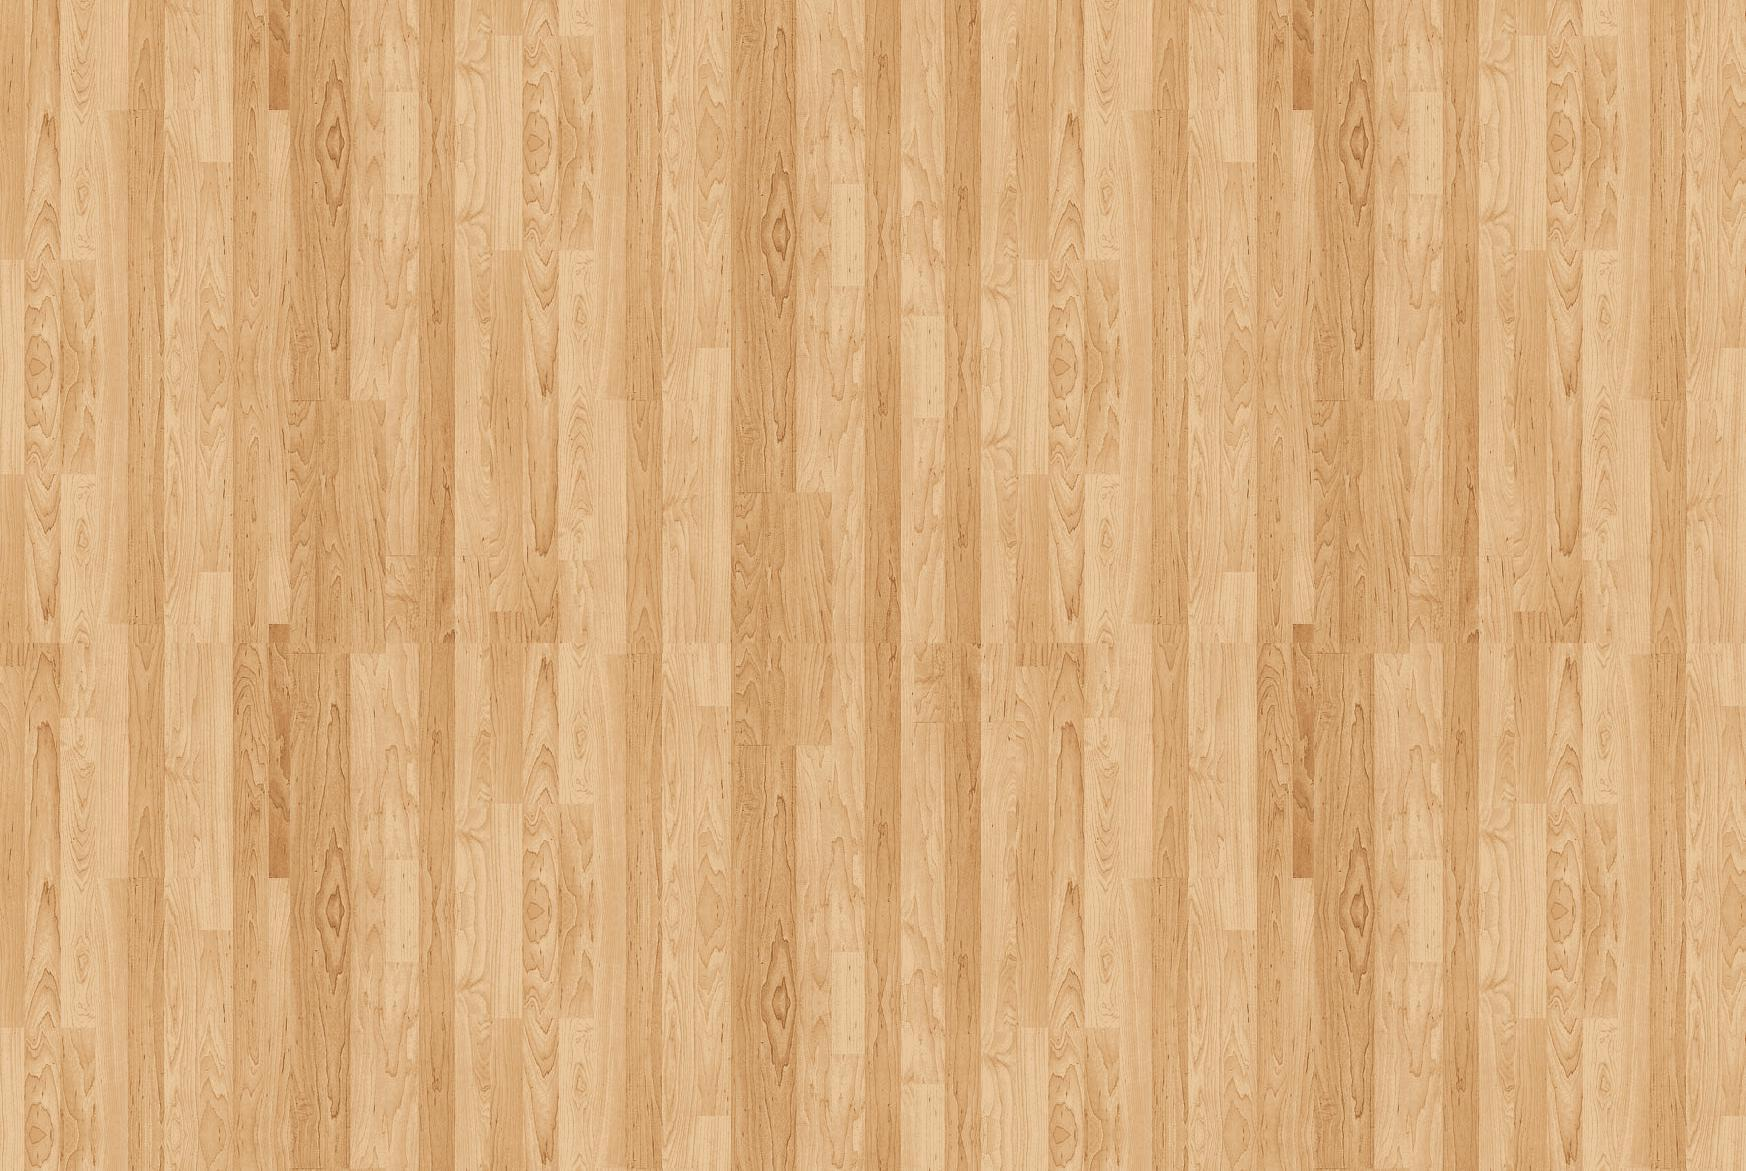 Wallpapers For > Light Wood Background Hd: wallpapercave.com/hd-wood-background